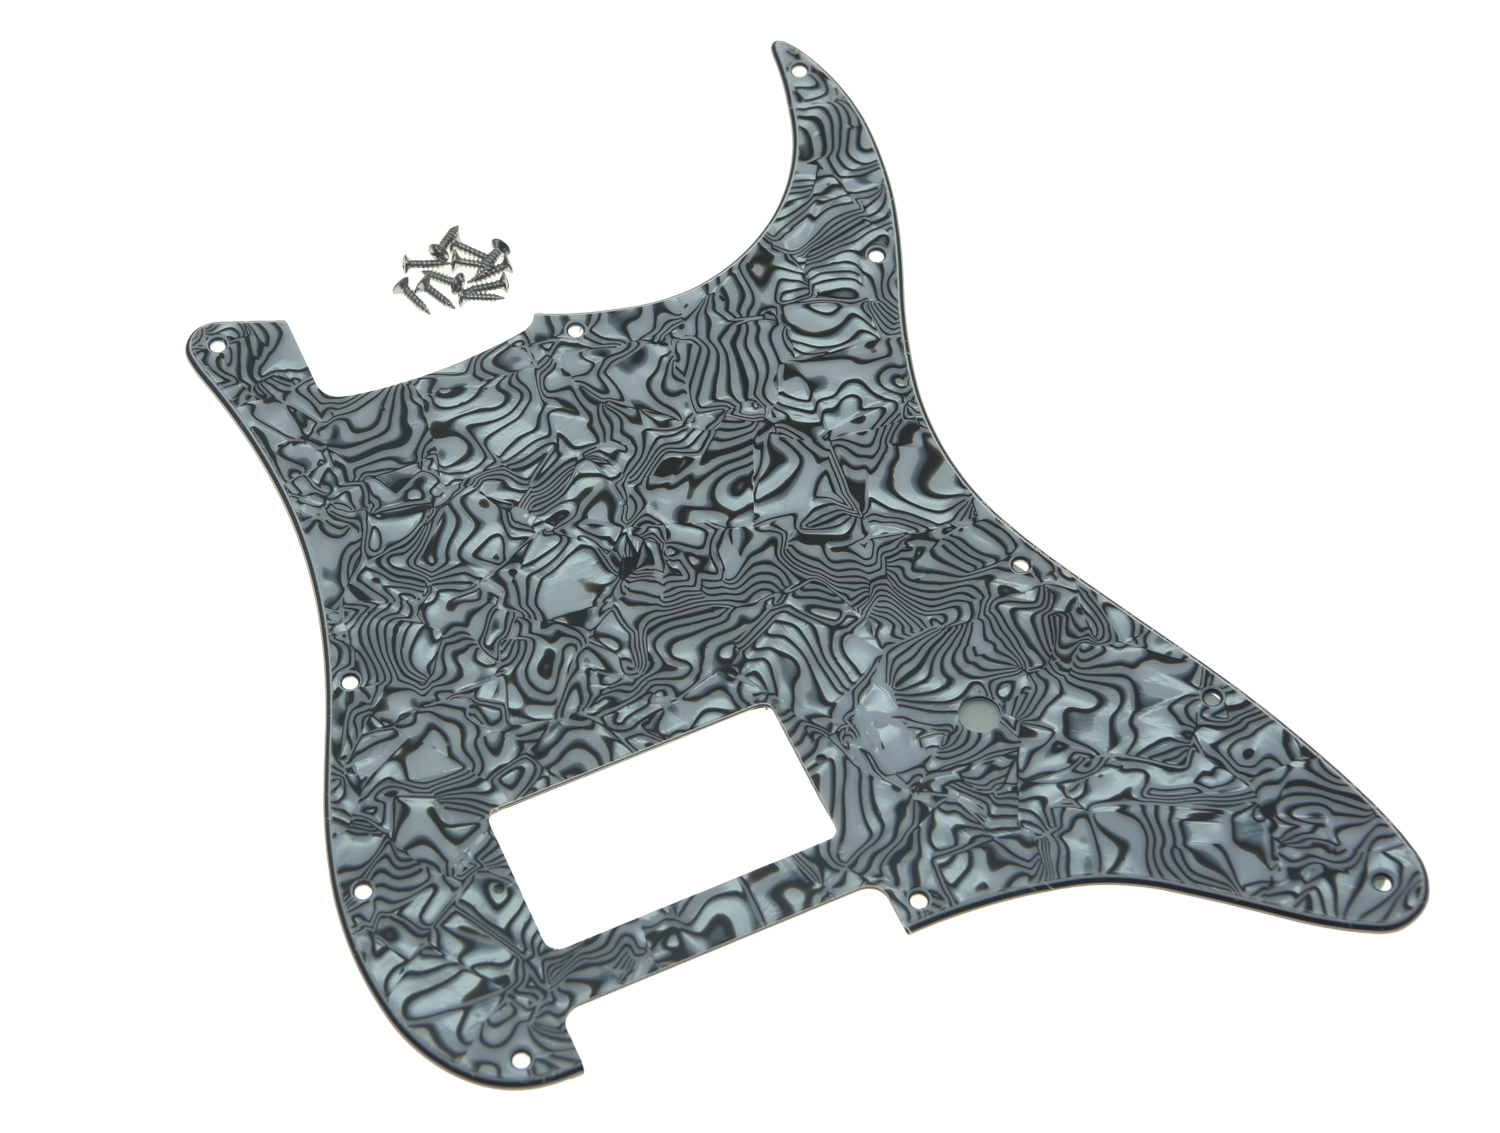 KAISH 11 Hole Strat One Humbucker Guitar Pickguard with screws Scratch Plate Fits Fender Delonge Stratocaster Guitar